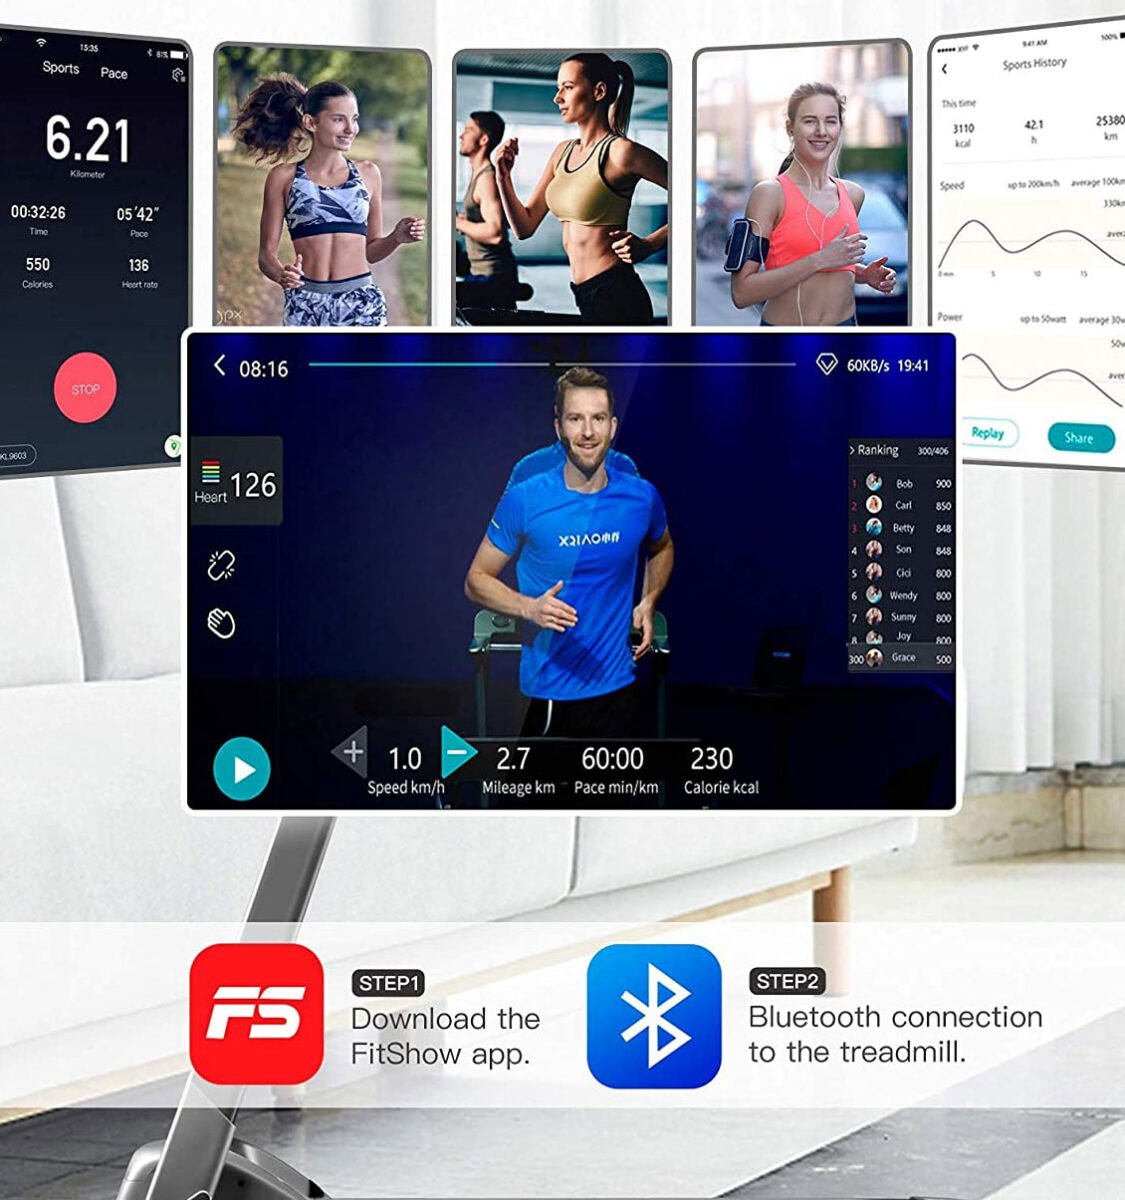 Workout series for the OVICX Q2S Folding Portable Treadmill Review